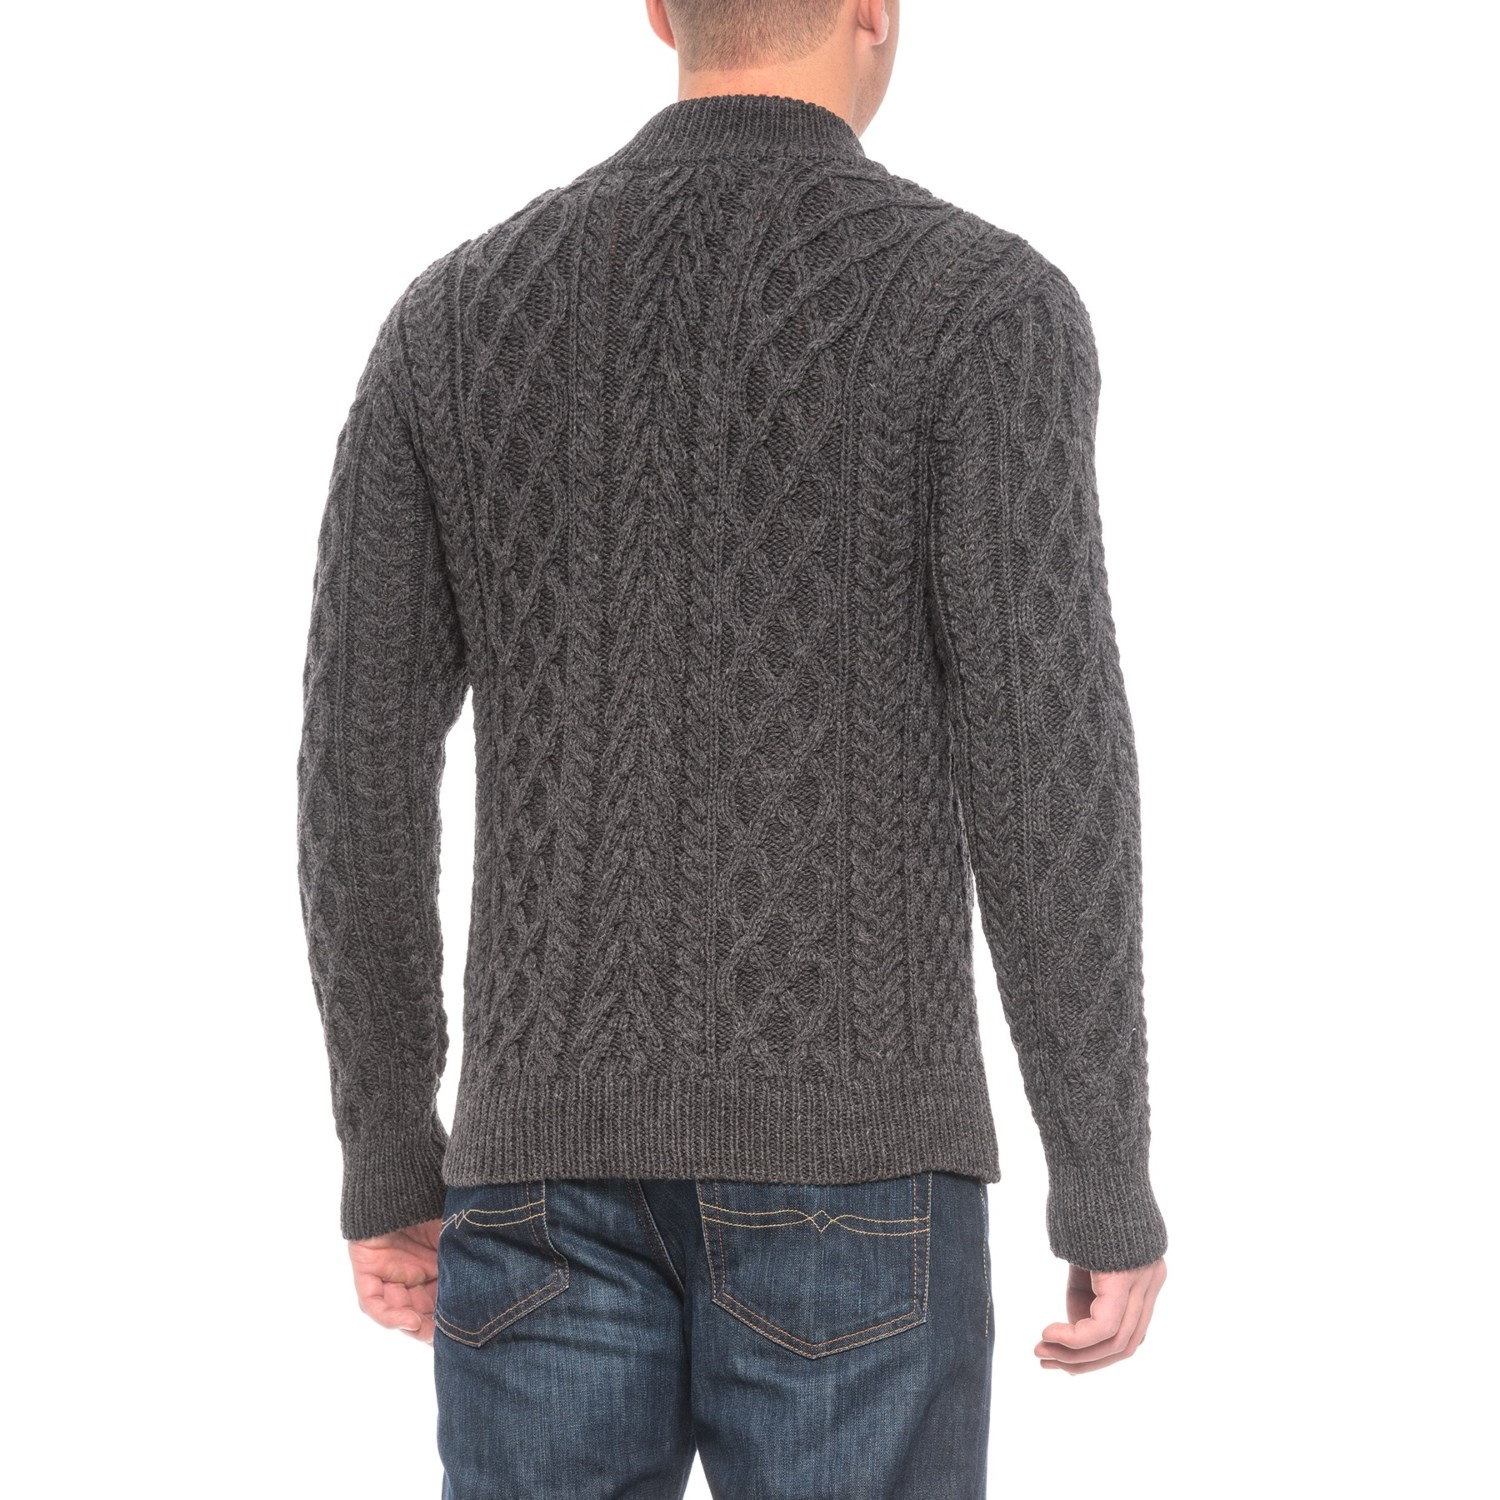 Inis crafts aran sweater for men save 61 for Inis crafts sweater price